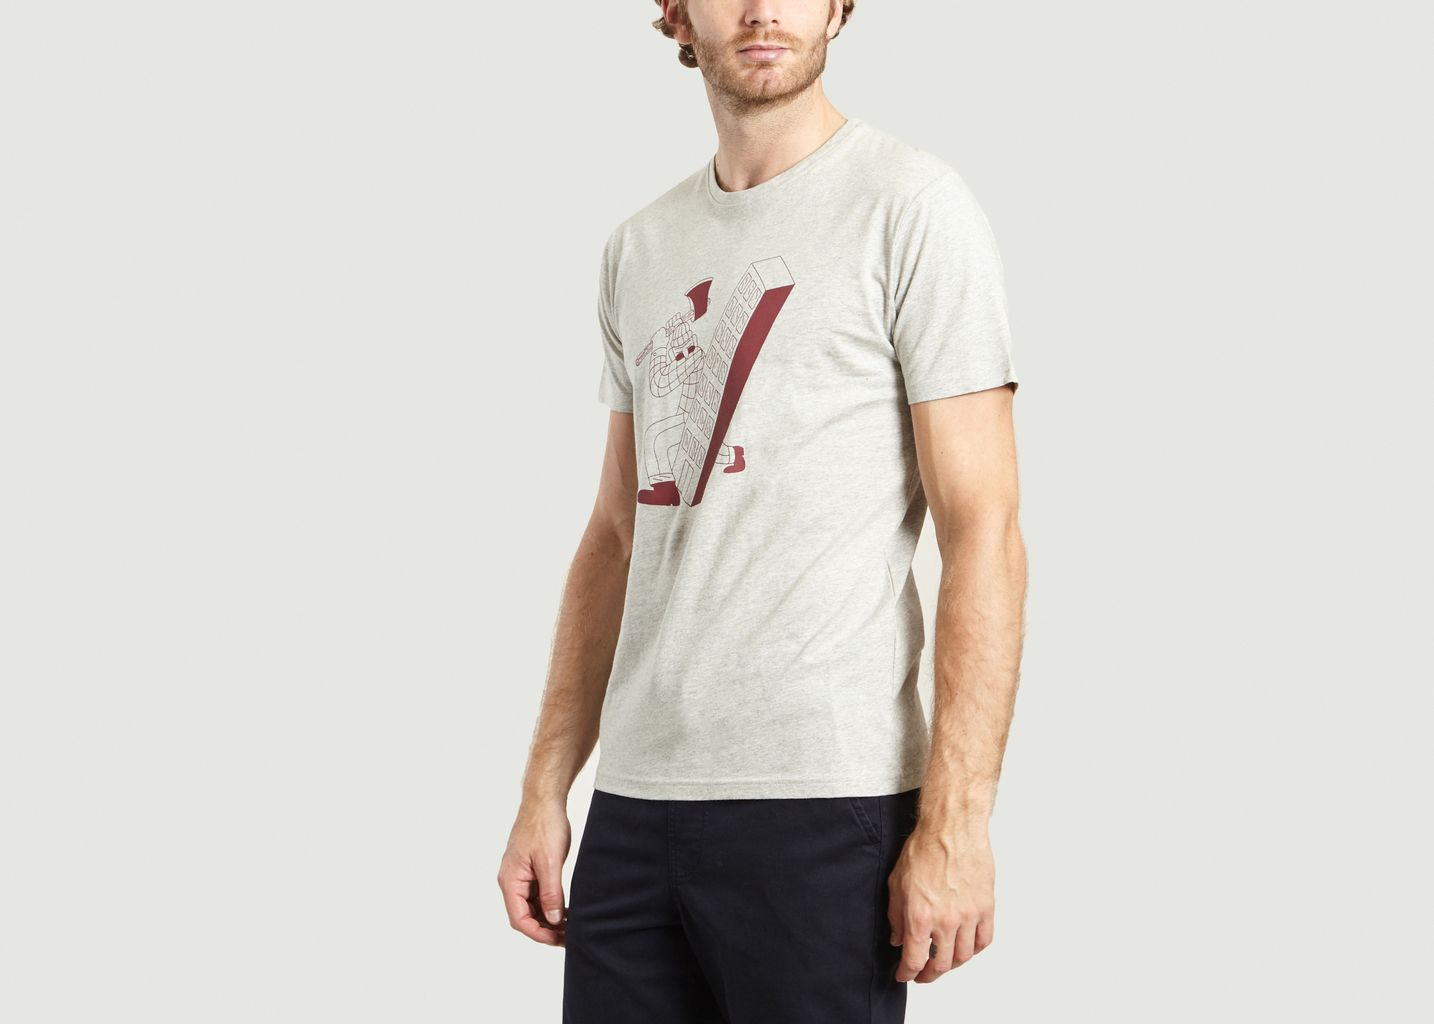 T-Shirt Building - Olow